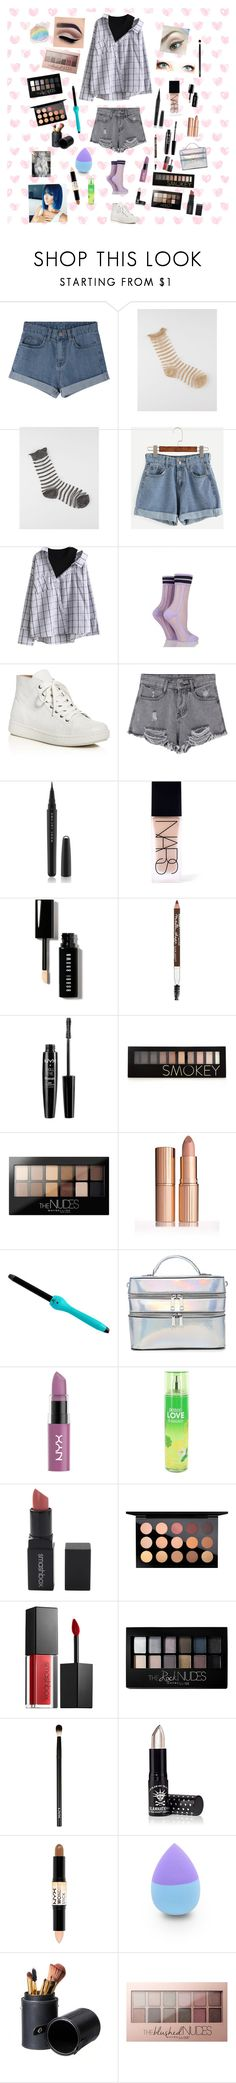 """On set day 1"" by taxitrucetown ❤ liked on Polyvore featuring Full Tilt, Sibling, Eileen Fisher, Marc Jacobs, NARS Cosmetics, Bobbi Brown Cosmetics, Maybelline, NYX, Forever 21 and Brilliance New York"